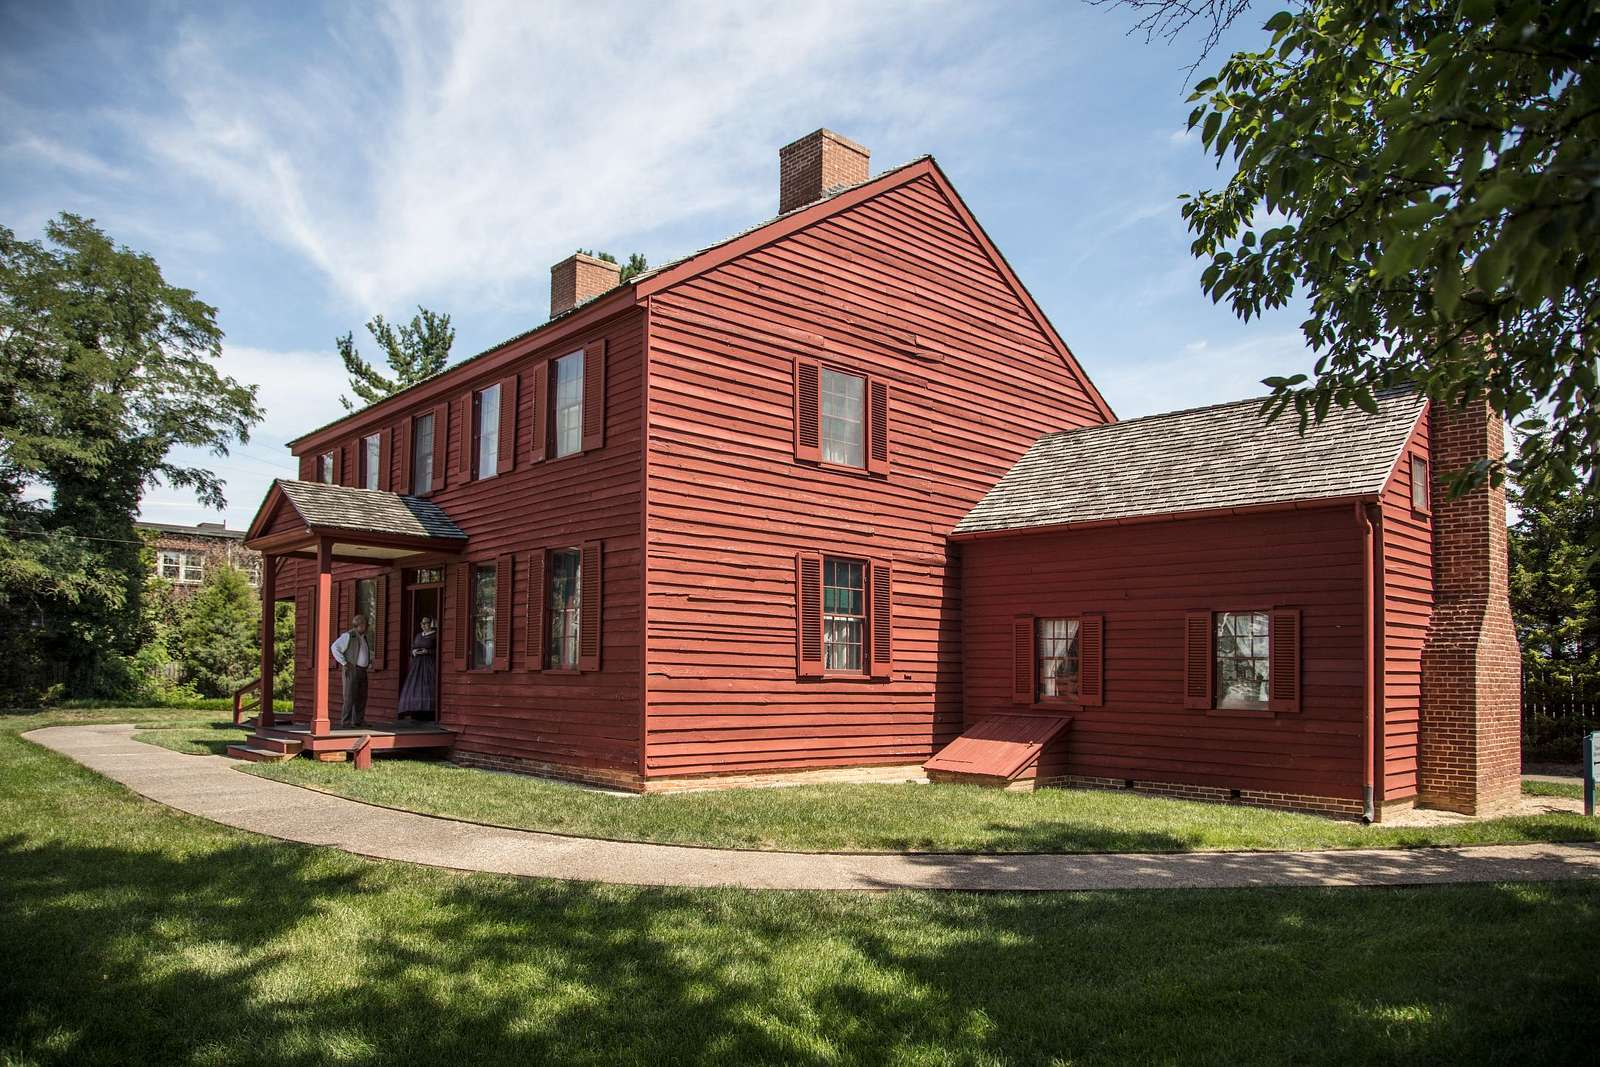 The Surratt House (also known as the Mary Surratt House and the Surratt House Museum) is a historic house and house museum located in Clinton (formerly Surrattsville), Prince George's County, Maryland